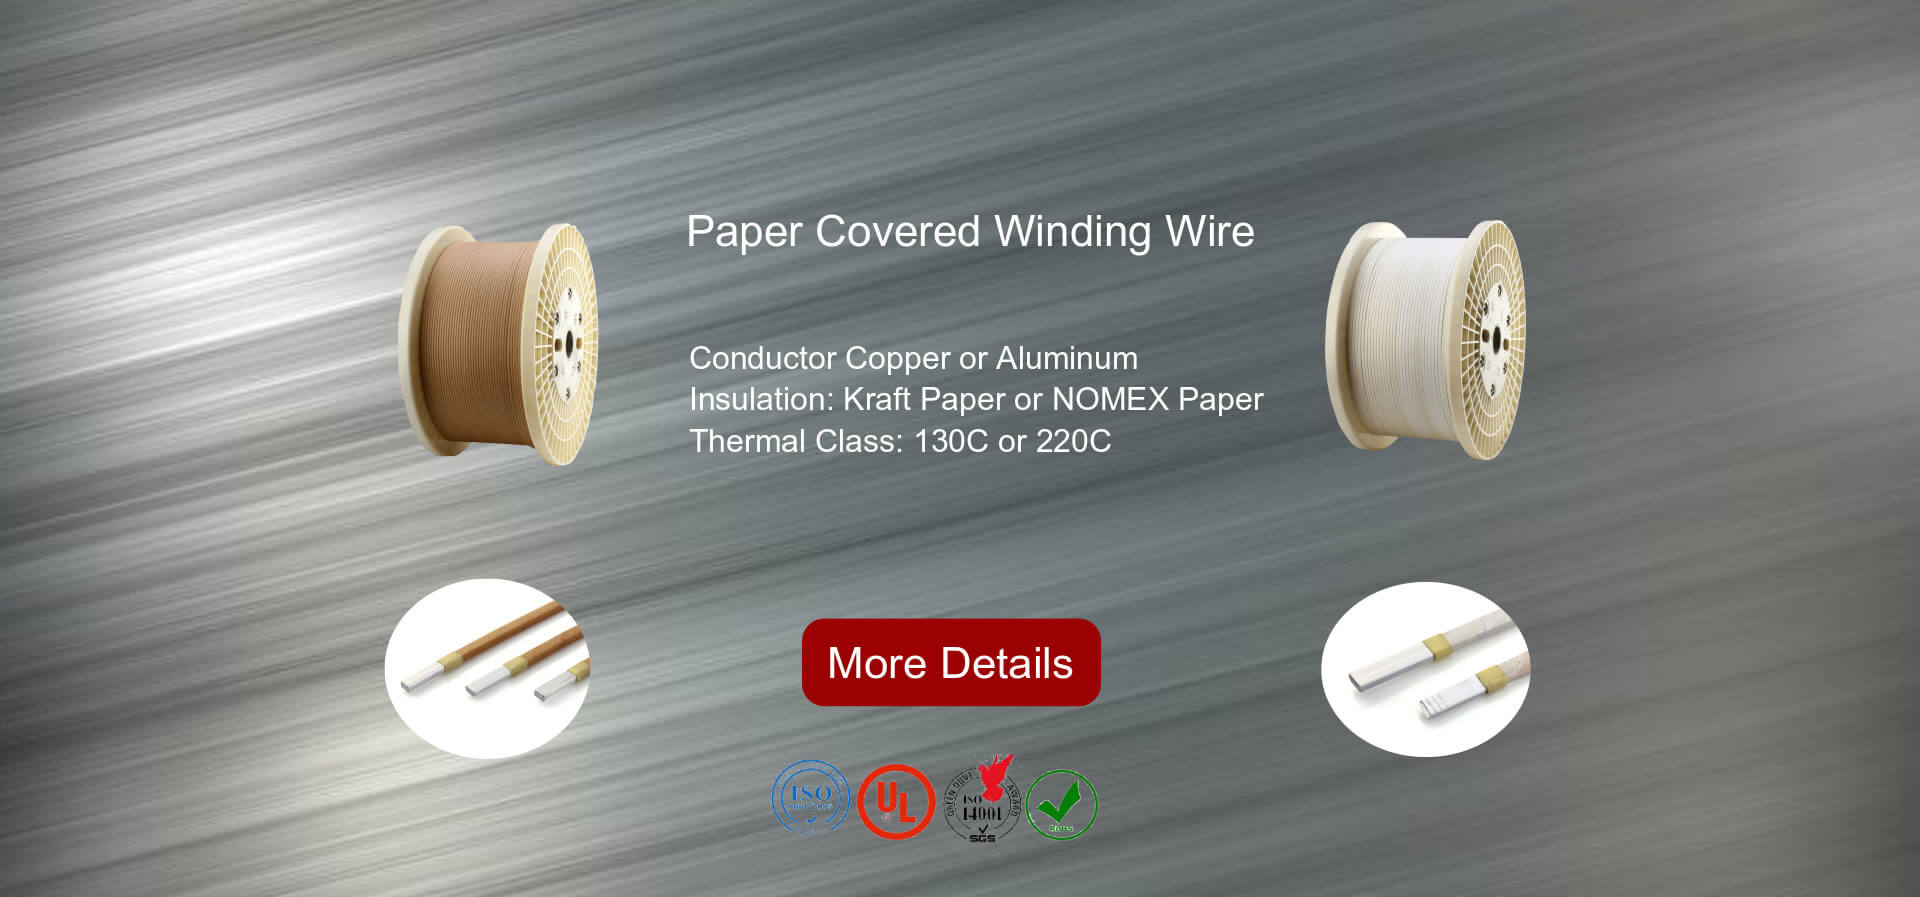 Aluminum Electrical Wiring Wire Manufacturers Coil Copper Or Winding